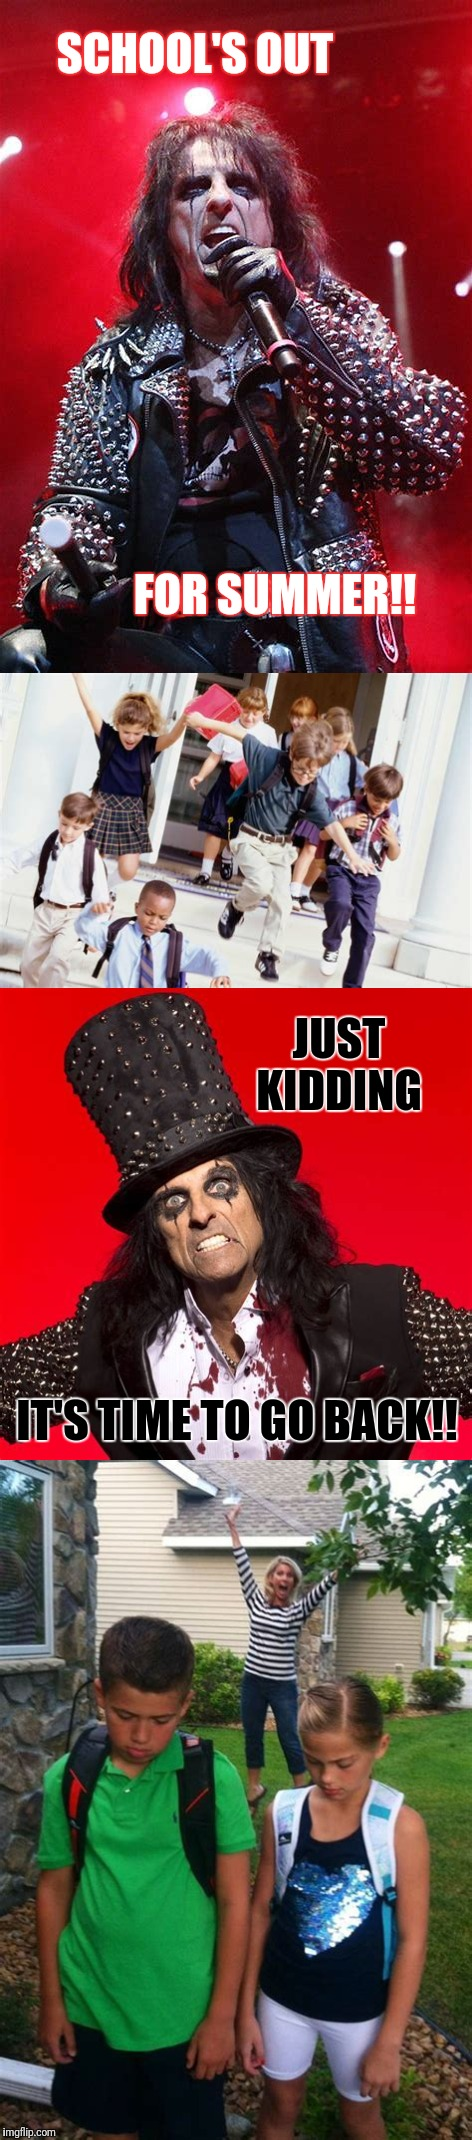 (Unofficial) Alice Cooper Week.  | SCHOOL'S OUT IT'S TIME TO GO BACK!! FOR SUMMER!! JUST KIDDING | image tagged in memes,alice cooper,schools out | made w/ Imgflip meme maker